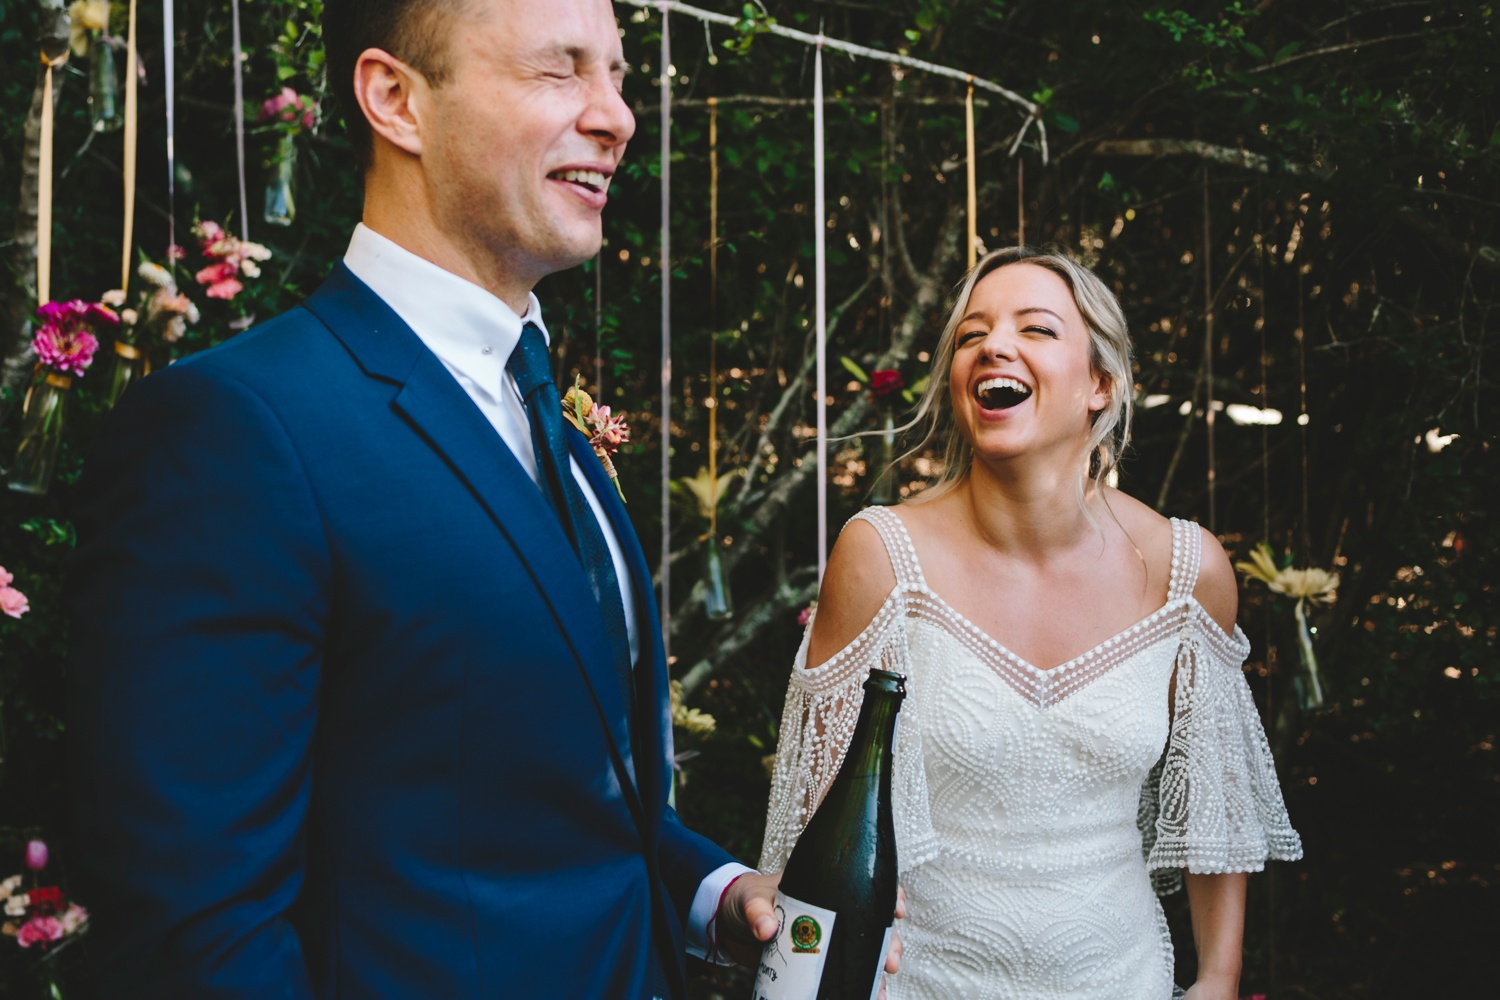 charlie_ray_photography_runaway_romance_elopement_emily_moon_plett_simple_boho_wedding_south_africa_bohemium_0070.jpg